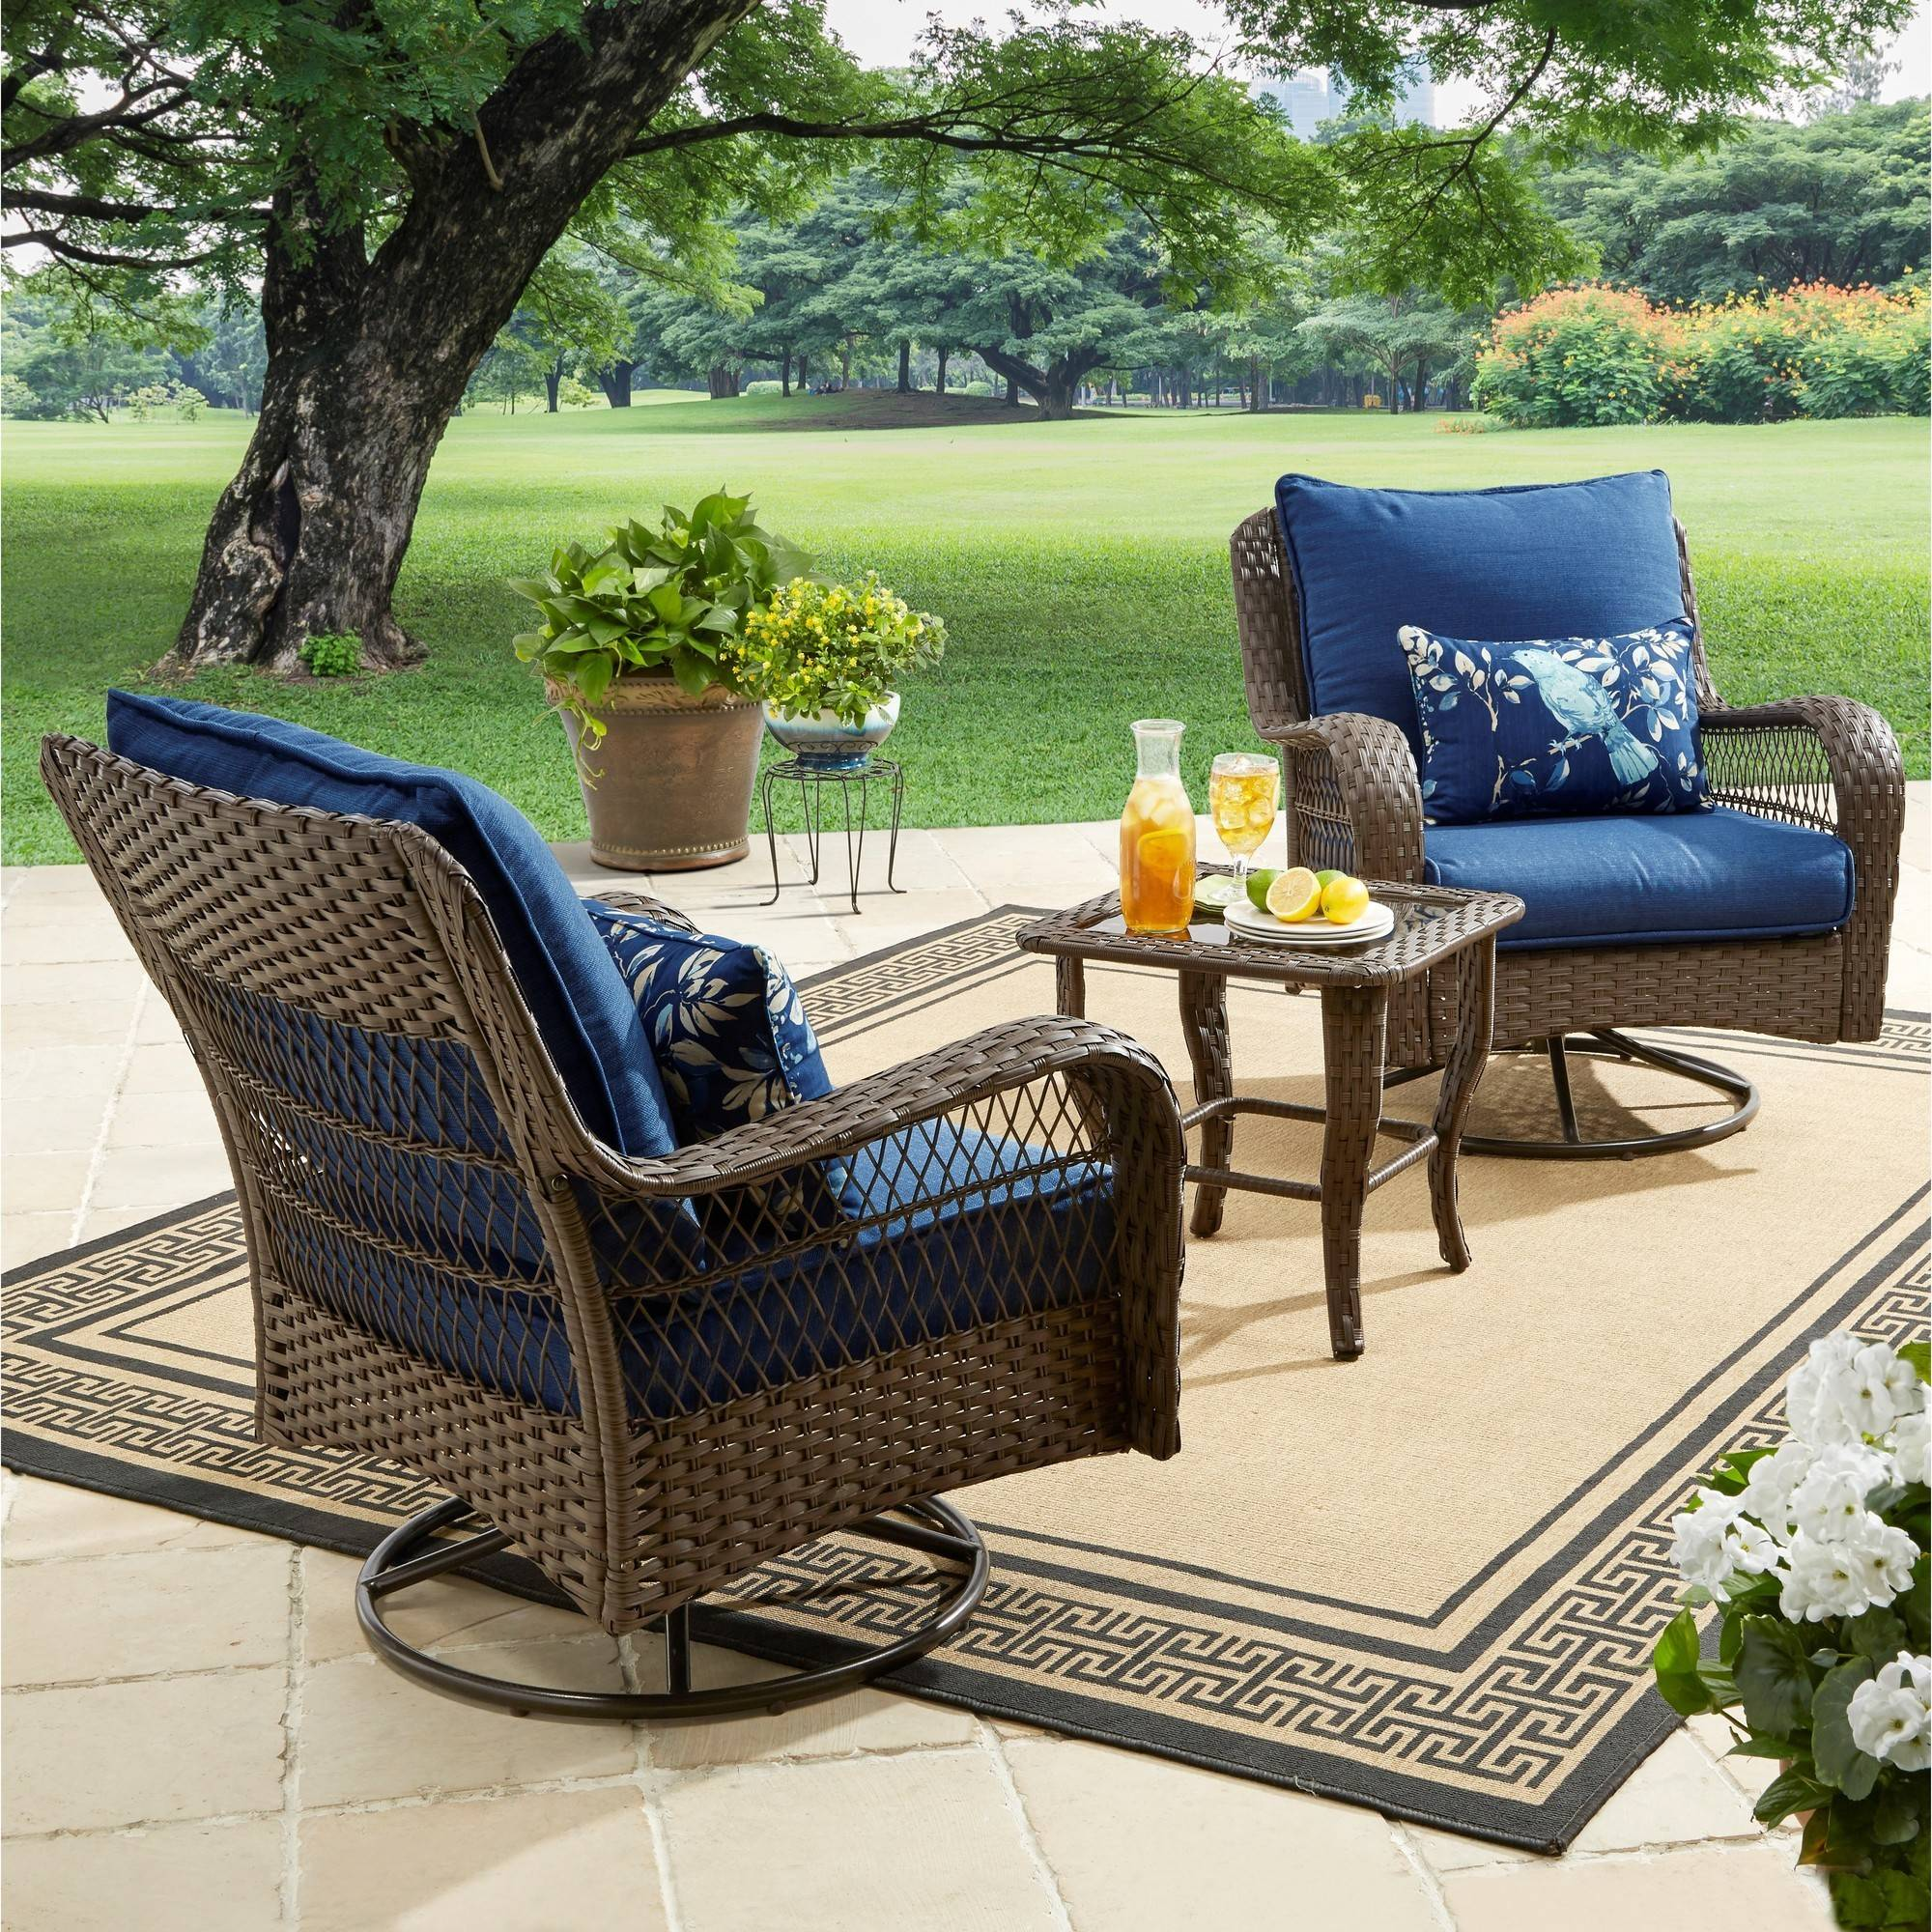 Better Homes and Gardens Colebrook 3-Piece Outdoor Chat Set, Seats 2 BH17-092-299-28